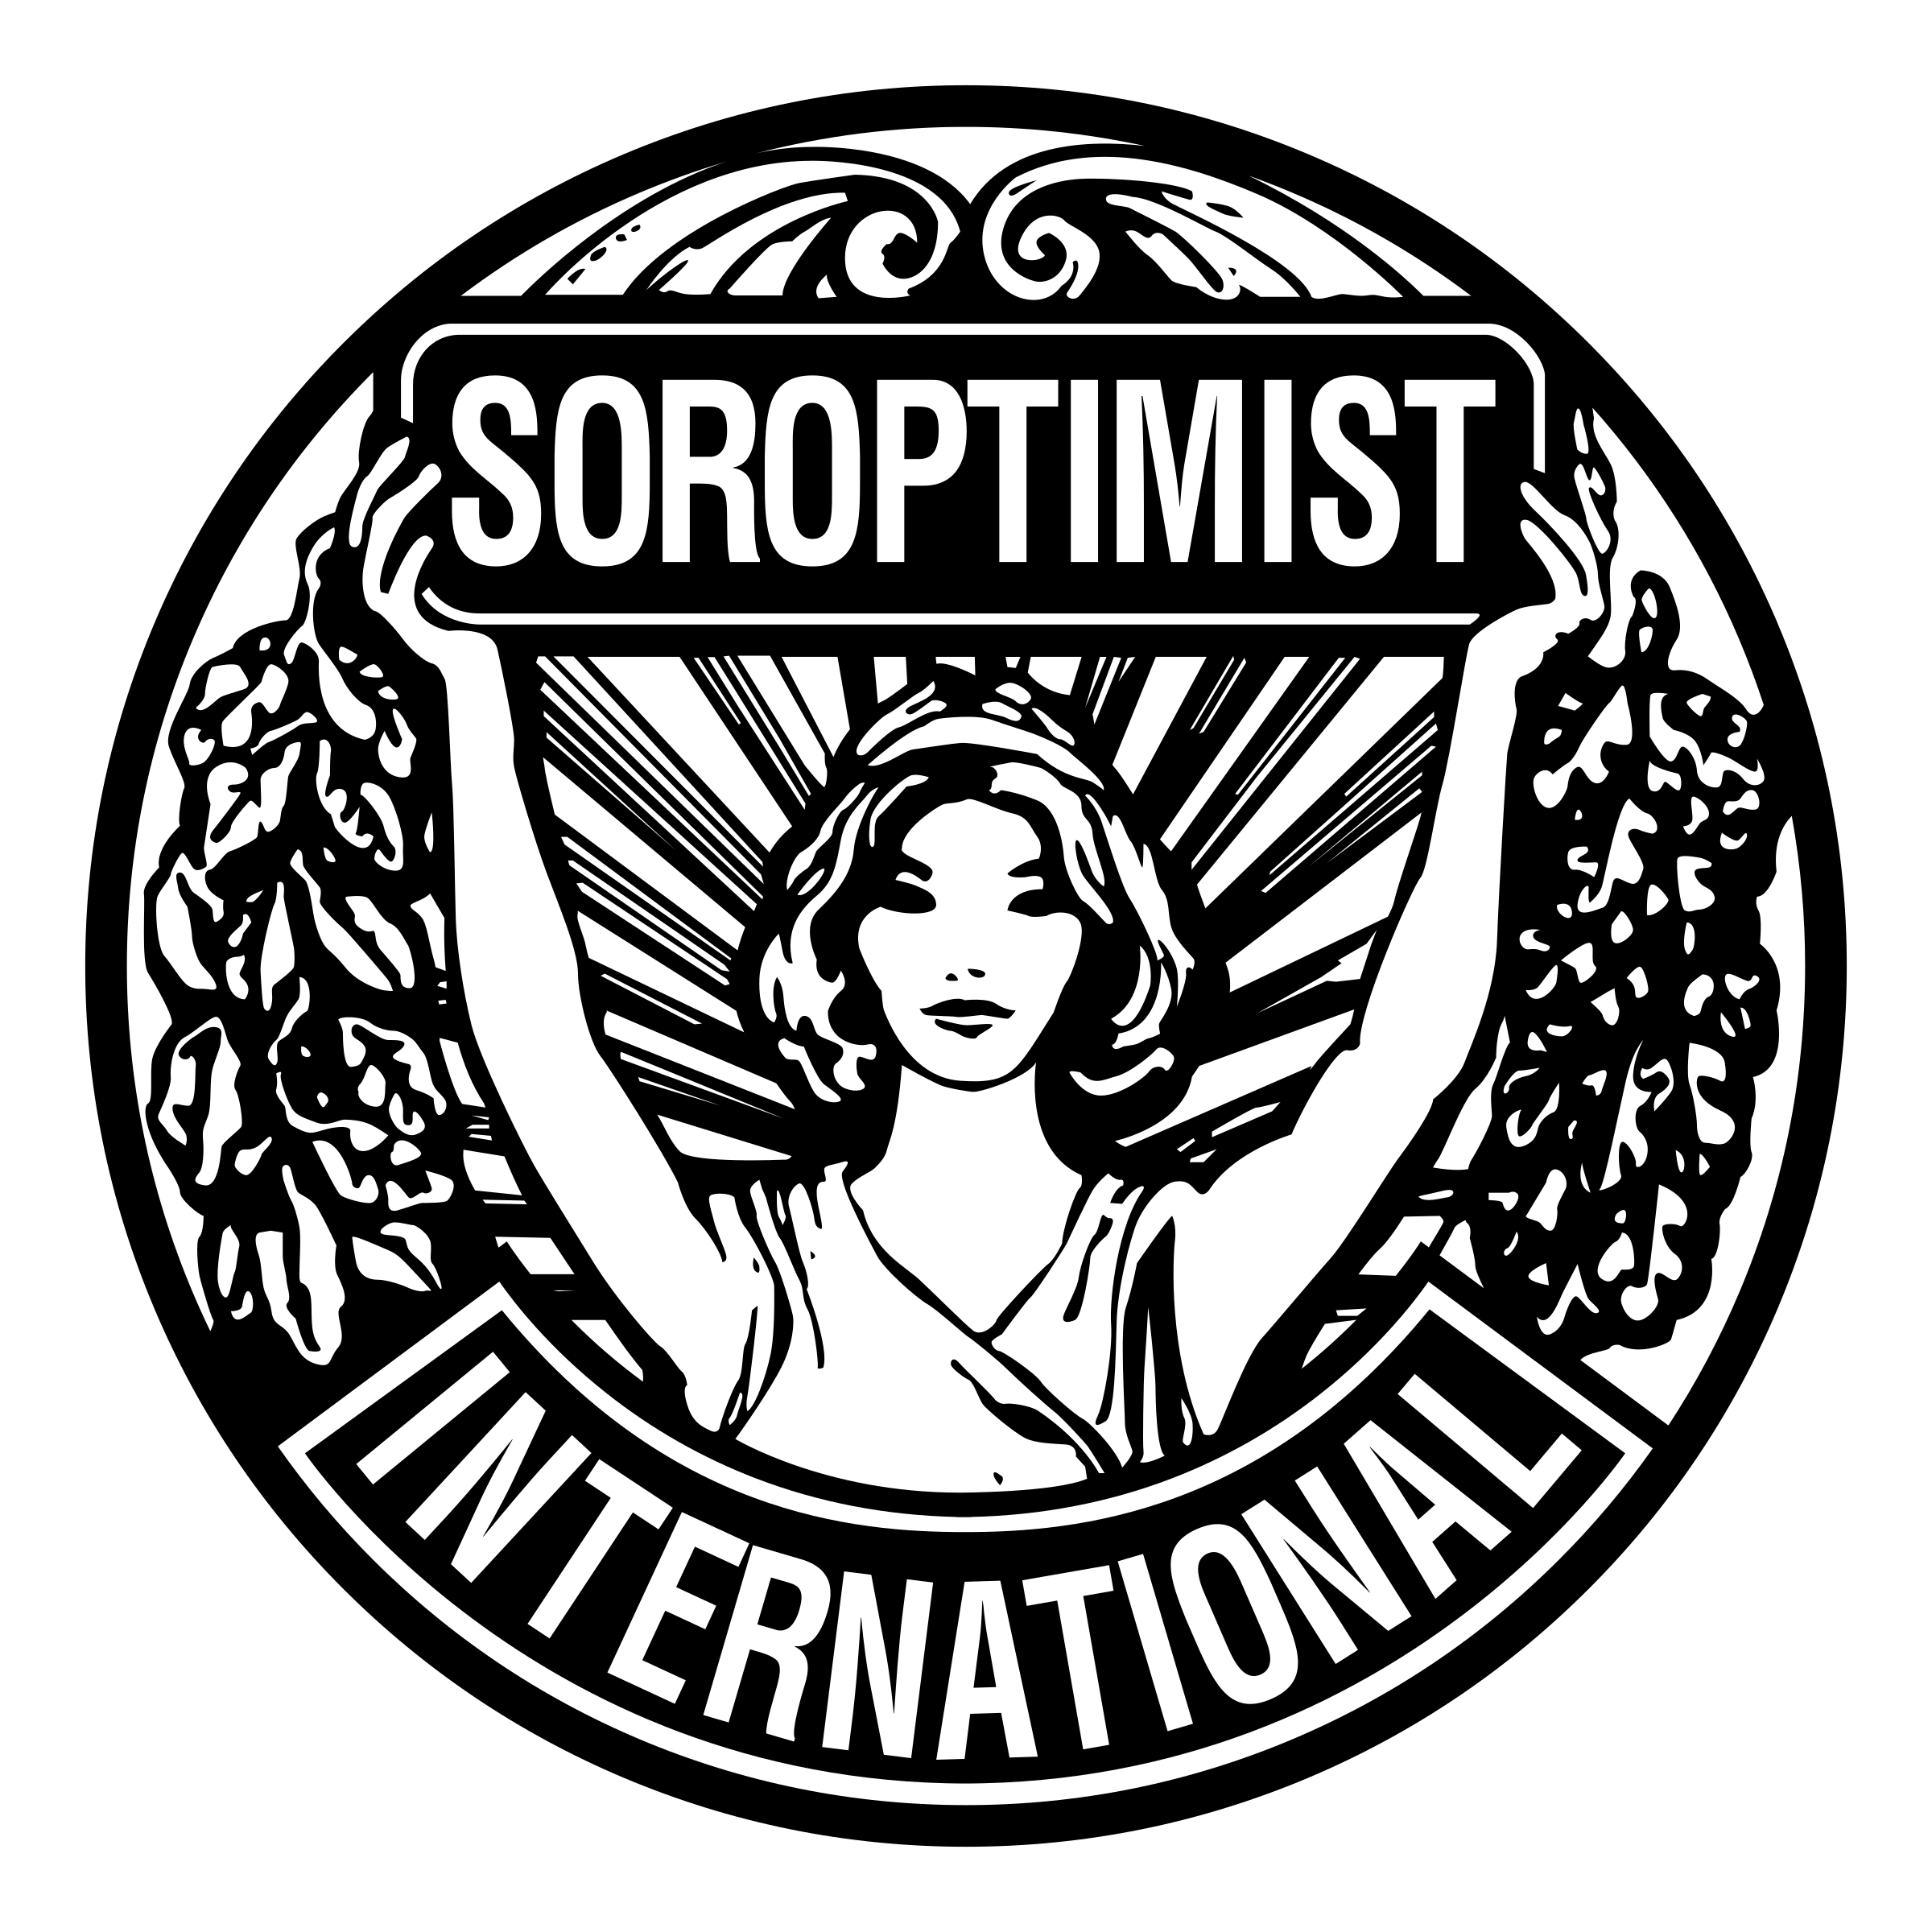 Billedresultat for soroptimist international logo download